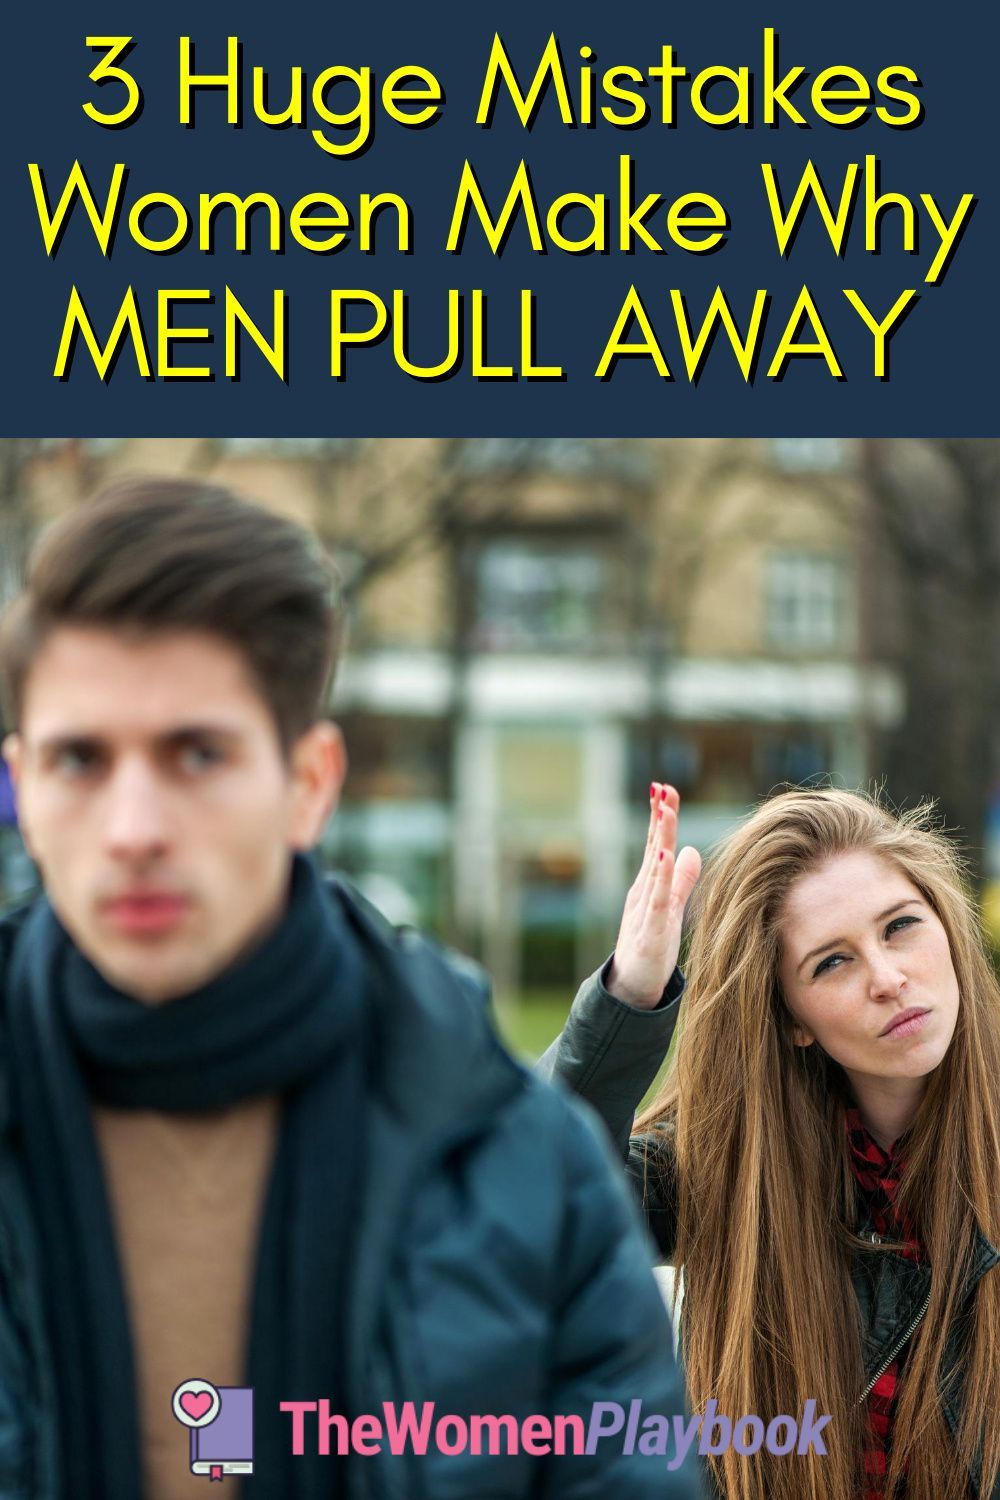 Why Men Pull Away: Learn the 3 Women Mistakes that Push